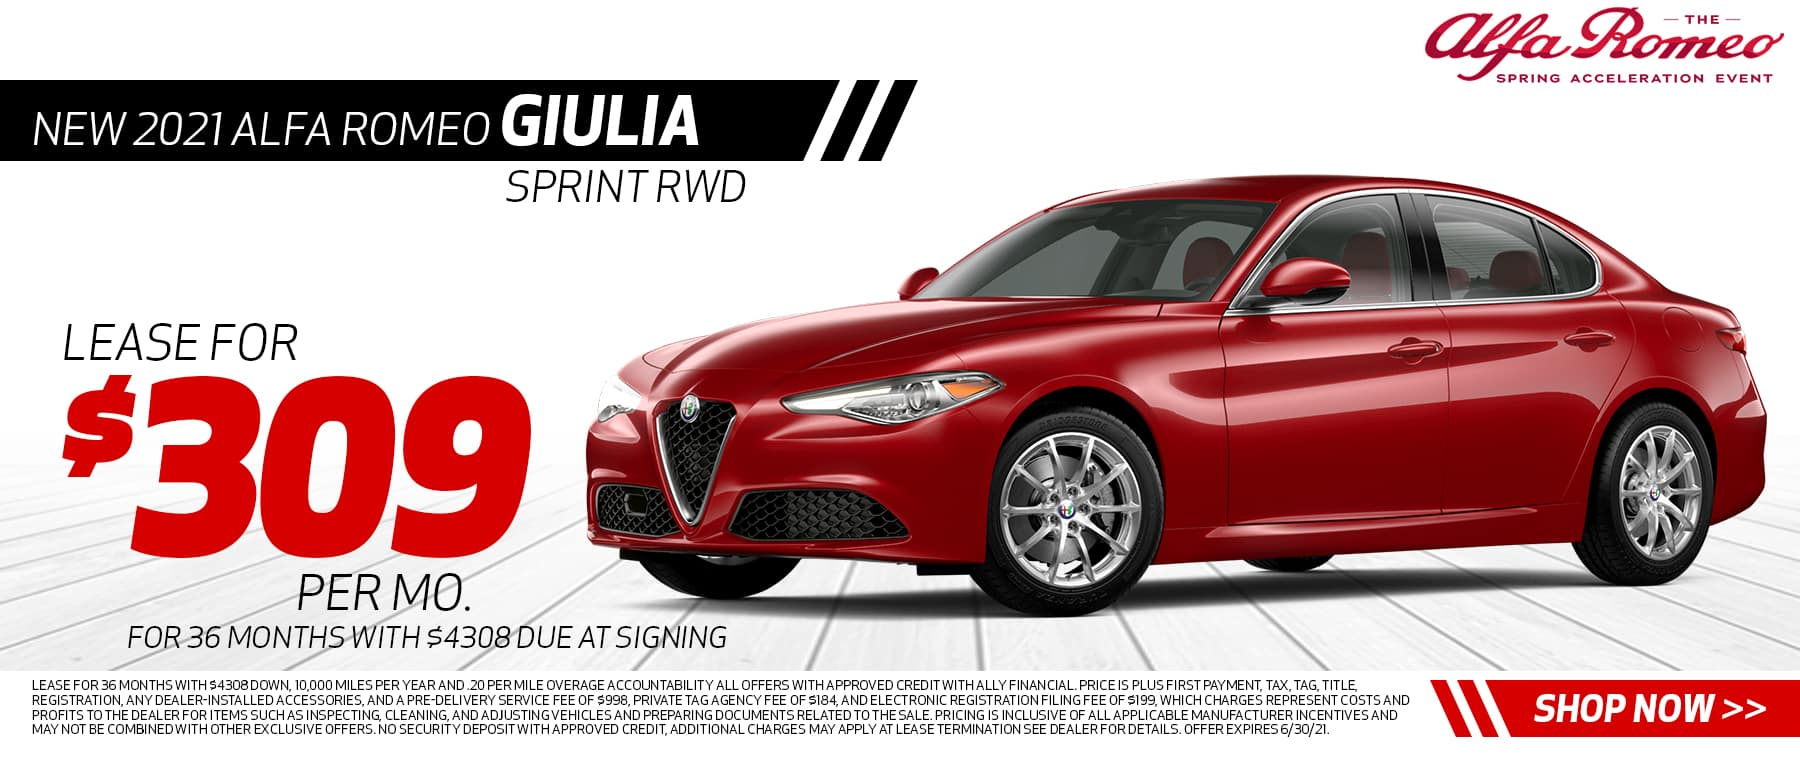 Lease for $309 per month 36 months, $4308 due at signing Disclaimer: Lease for 36 months with $4308 down, 10,000 miles per year and .20 per mile overage accountability All offers with approved credit with ALLY FINANCIAL. Price is plus first payment, tax, tag, title, registration, any dealer-installed accessories, and a pre-delivery service fee of $998, Private Tag Agency Fee of $184, and Electronic Registration Filing Fee of $199, which charges represent costs and profits to the dealer for items such as inspecting, cleaning, and adjusting vehicles and preparing documents related to the sale. Pricing is inclusive of all applicable manufacturer incentives and may not be combined with other exclusive offers. No security deposit with approved credit, additional charges may apply at lease termination See dealer for details. Offer expires 6/30/21.